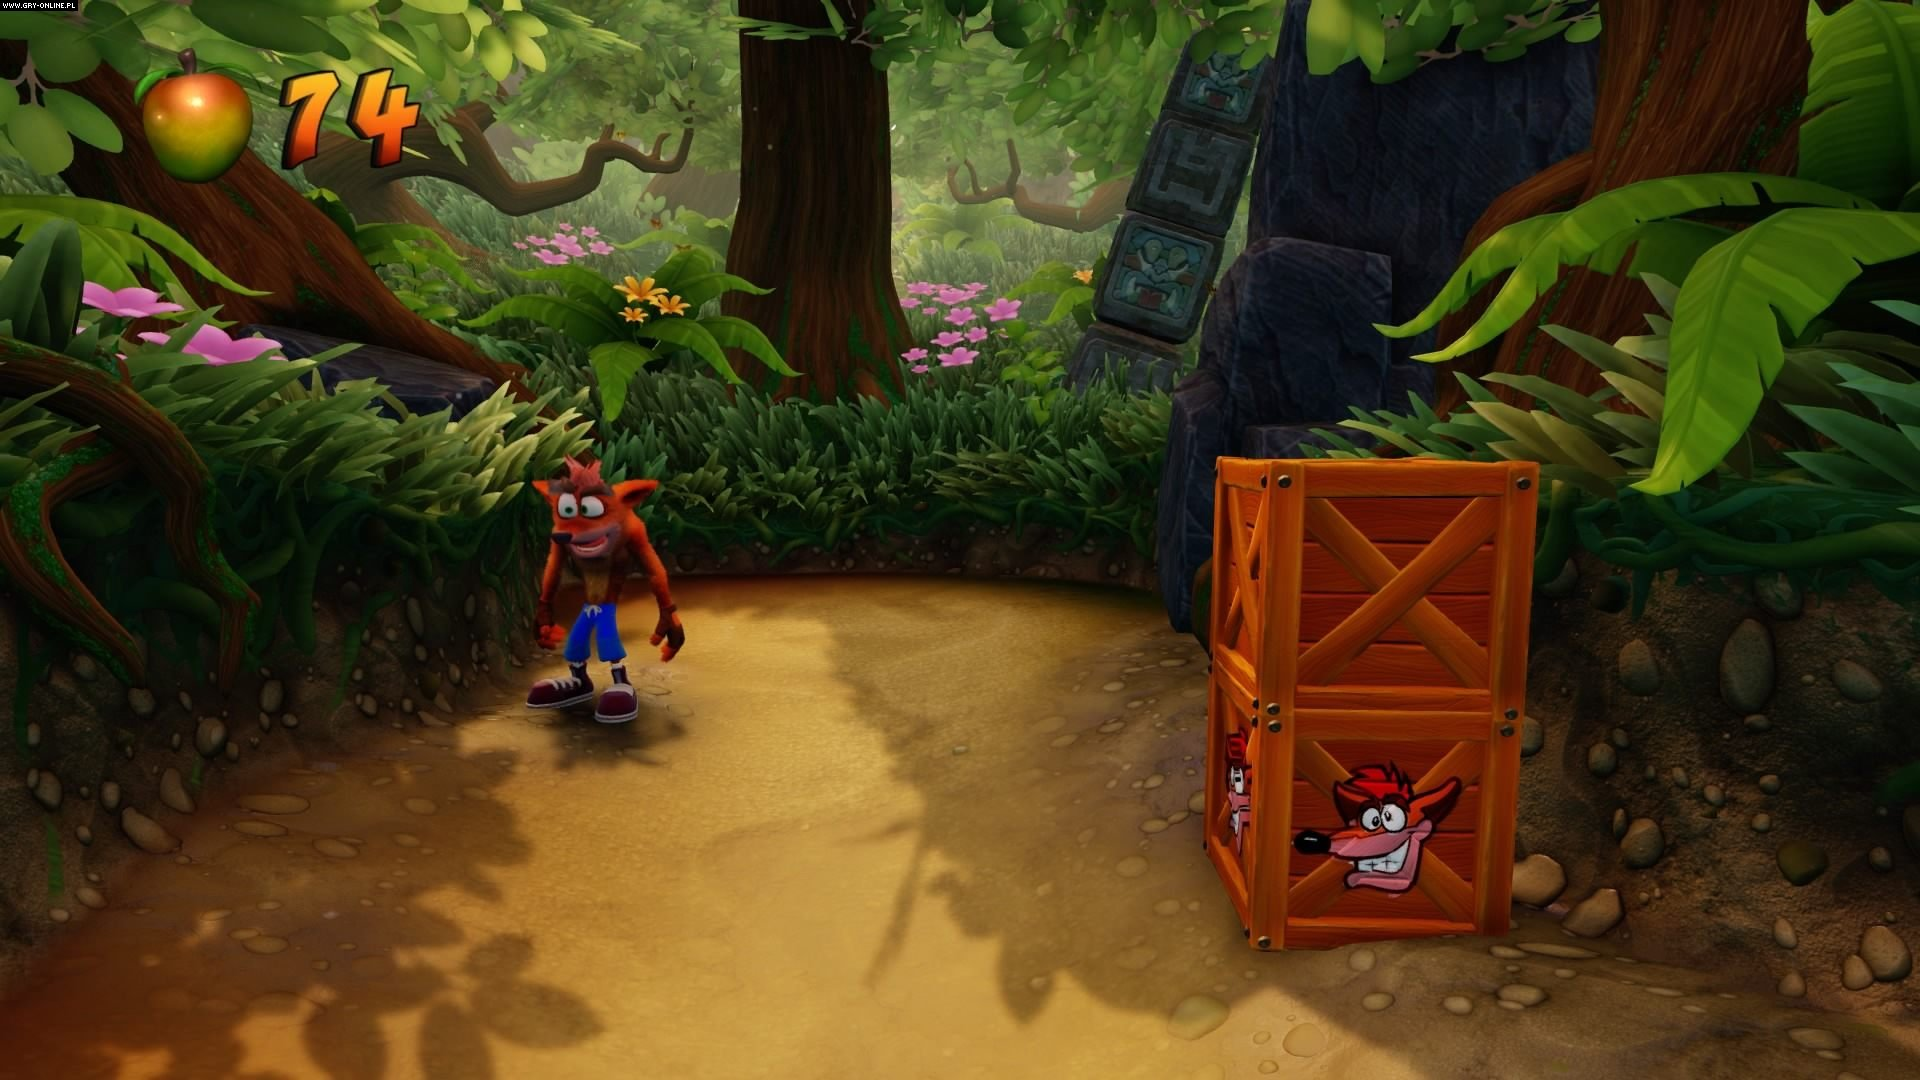 Crash Bandicoot N. Sane Trilogy PC, PS4, XONE, Switch Gry Screen 37/115, Vicarious Visions, Activision Blizzard